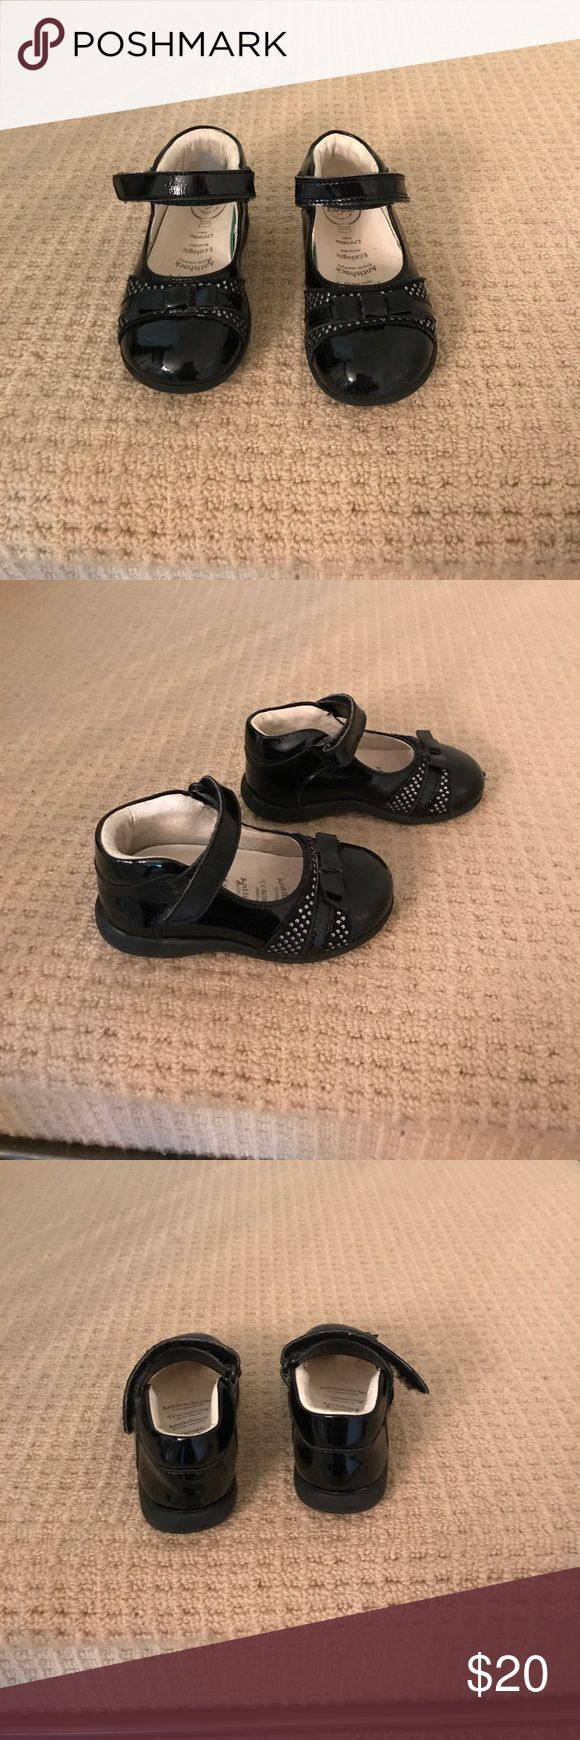 Black patent leather Mary Jane. Size 5,5. Primigi Practically new patent leather Mary Jane by Primigi. Color Black. Bow and studs detail in front. Velcro closure. Leather inside. Arch support. Great condition, practically new! Primigi Shoes Baby & Walker